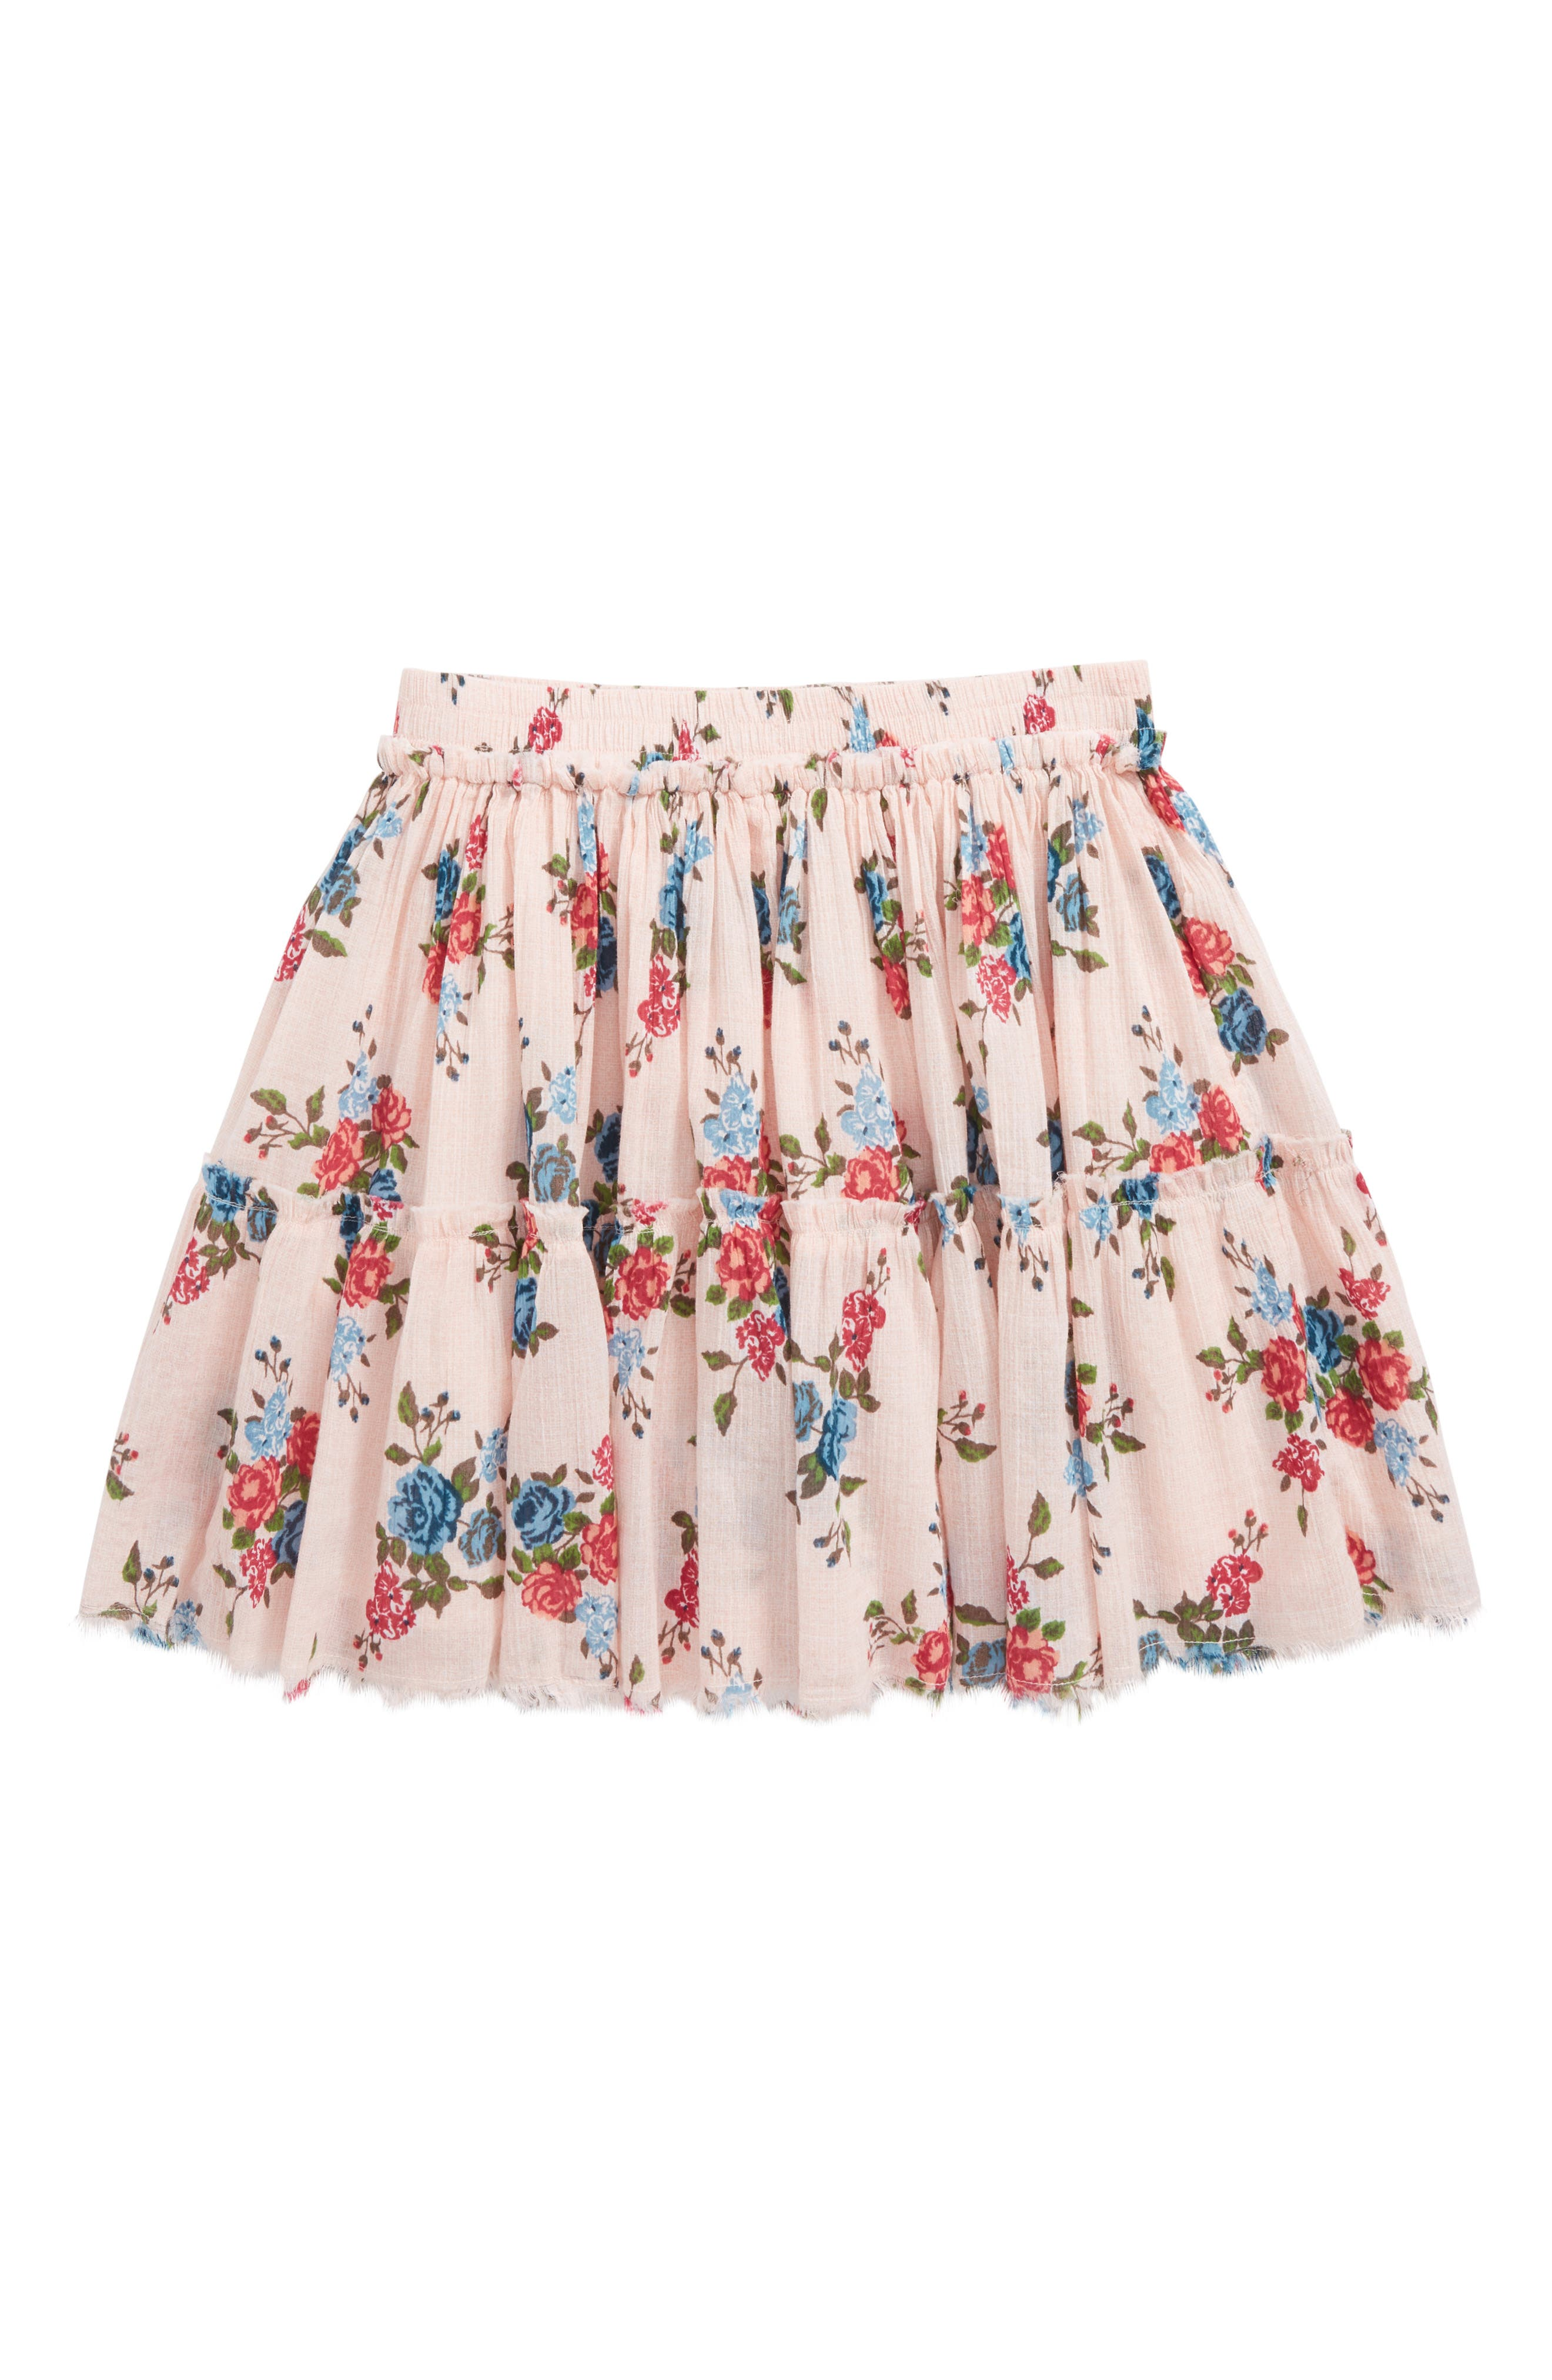 Floral Frayed Ruffle Hem Skirt,                             Main thumbnail 1, color,                             Pink Peach Bunch Floral